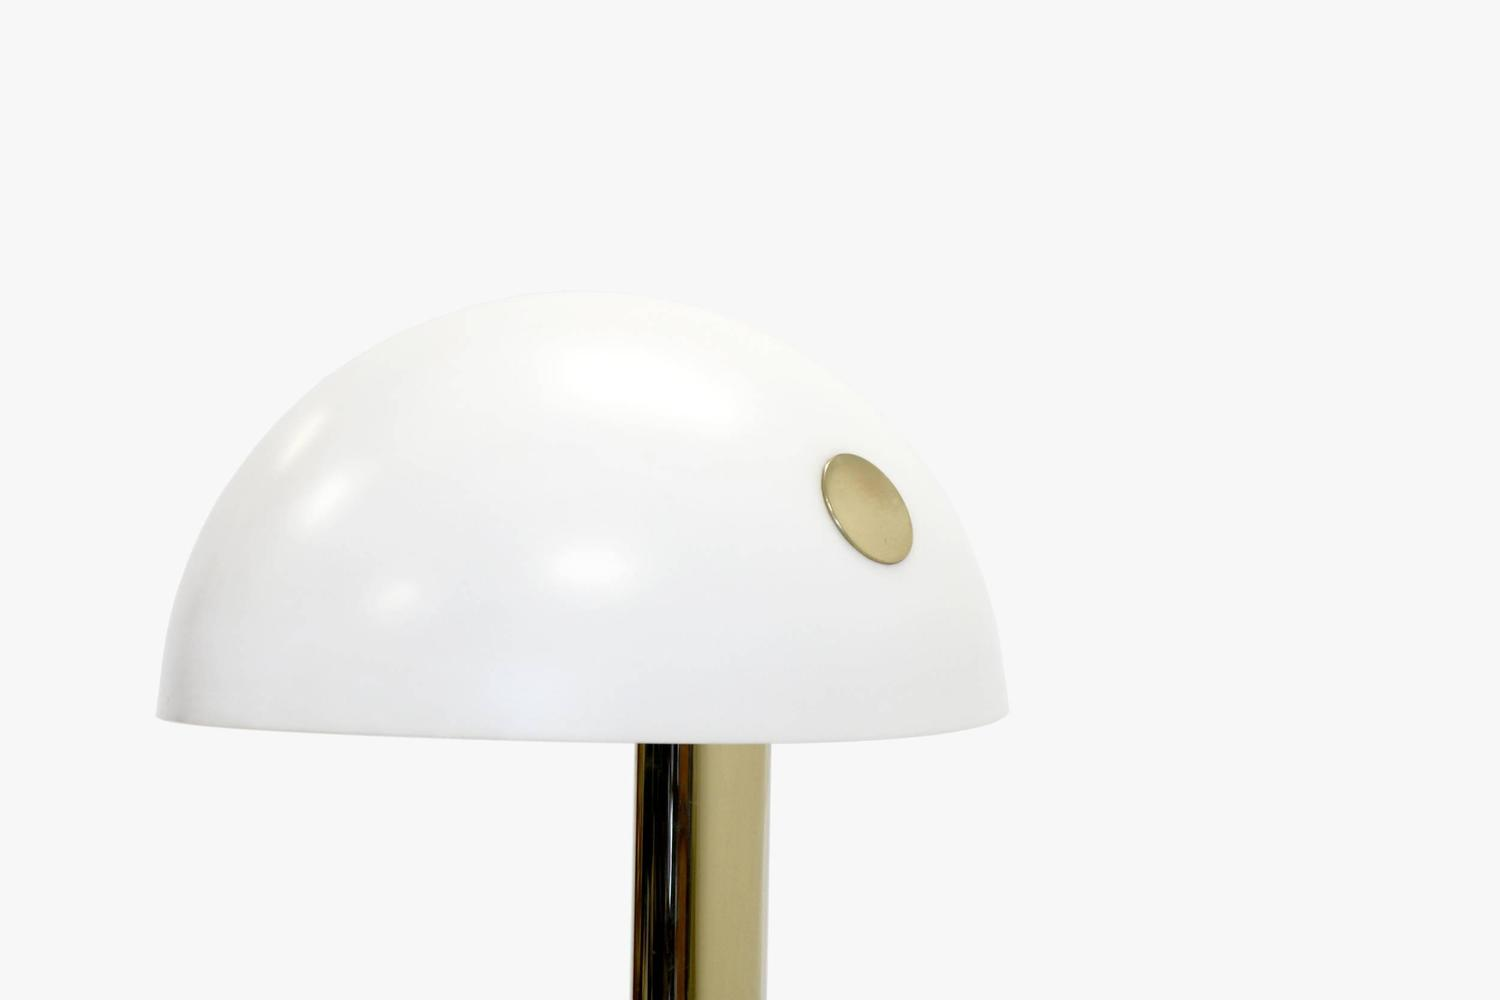 Minimalist Floor Lamp Minimalist Floor Lamp By Jonas Hilde At 1stdibs